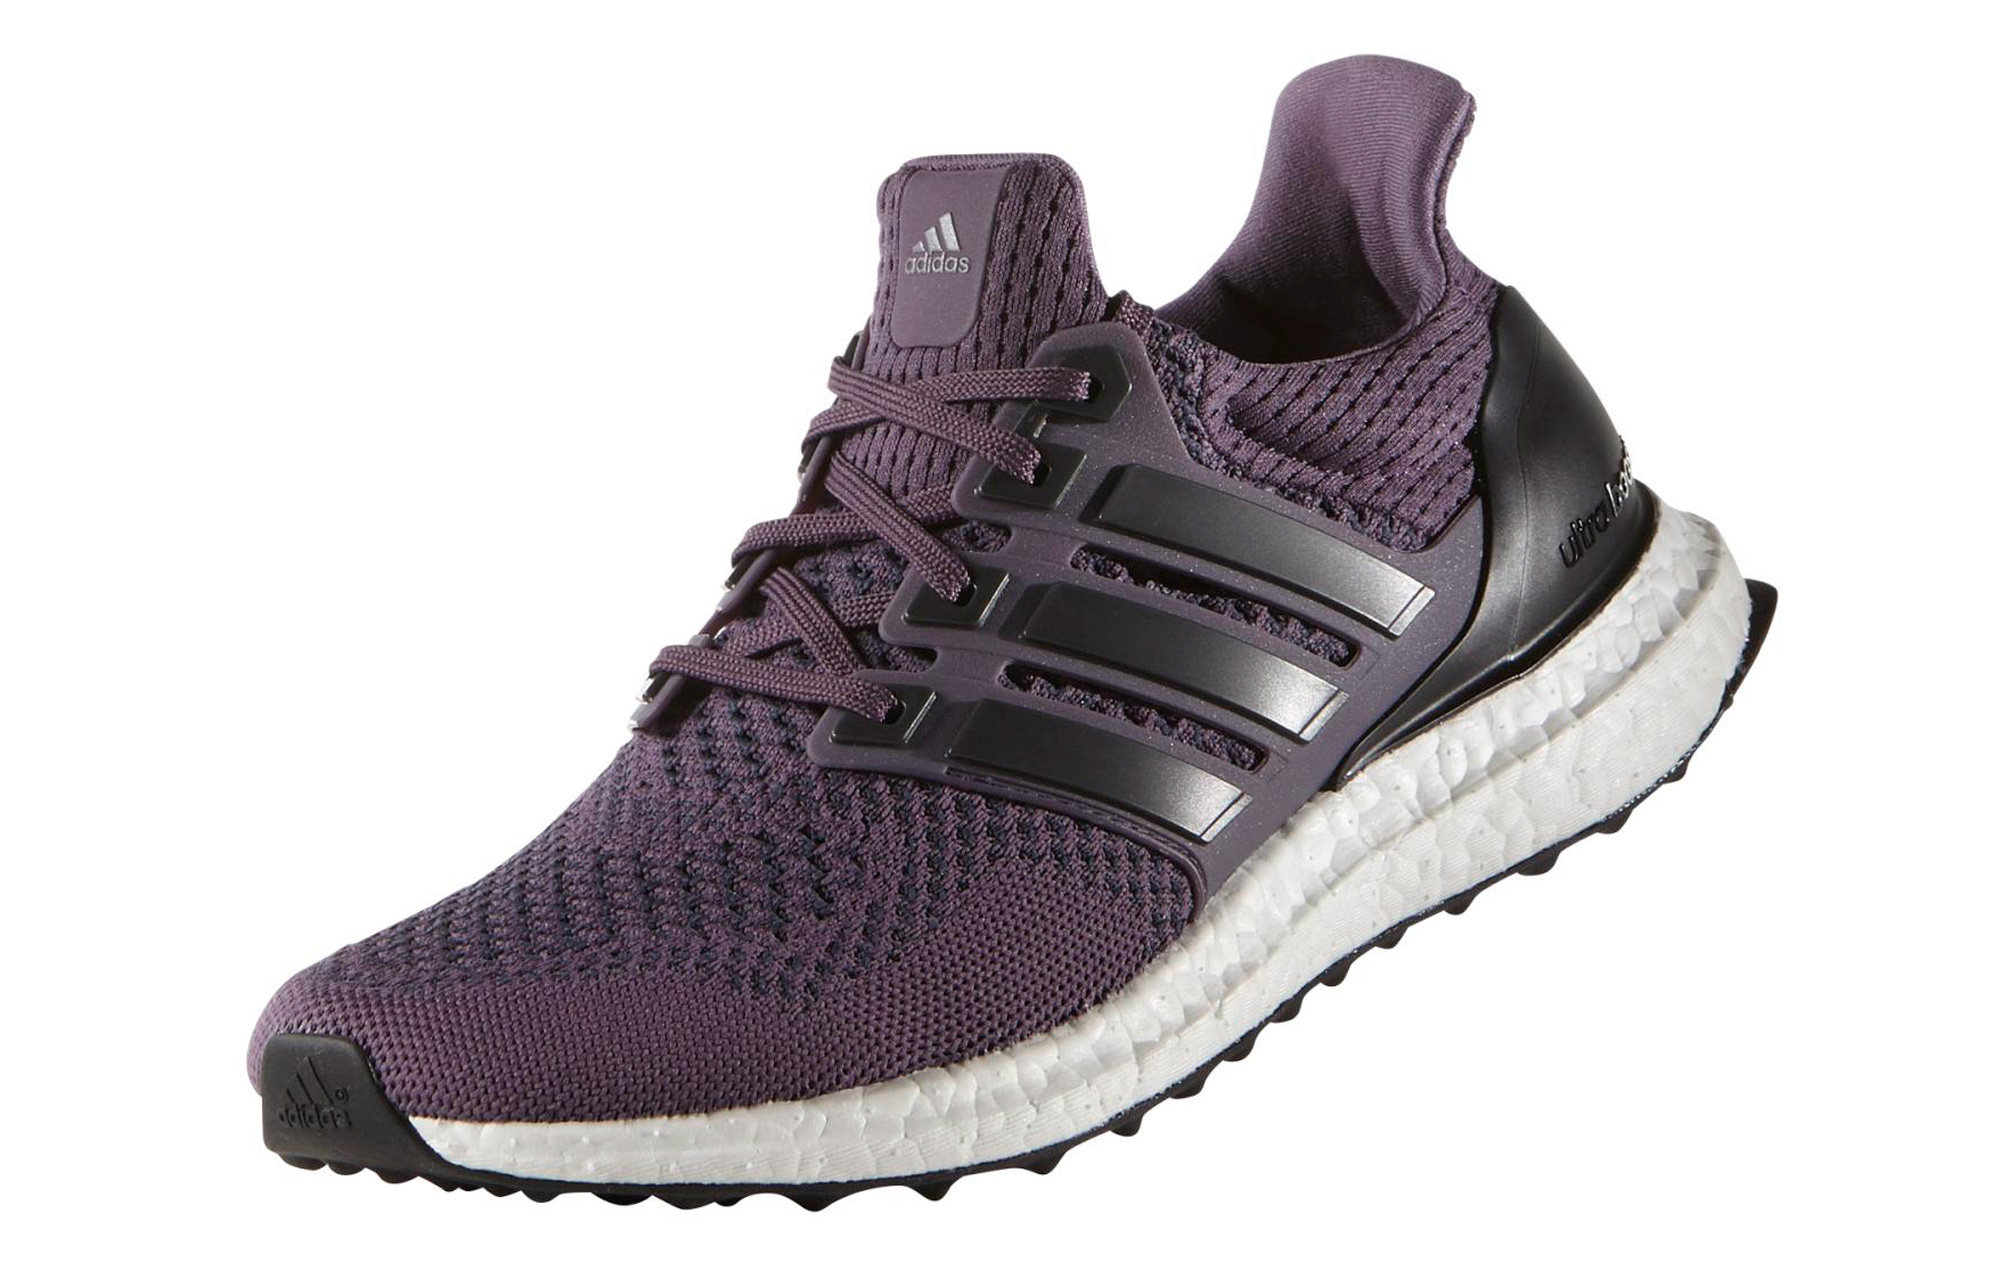 44a73d85f adidas ultra boost Womens Running Shoes - Purple